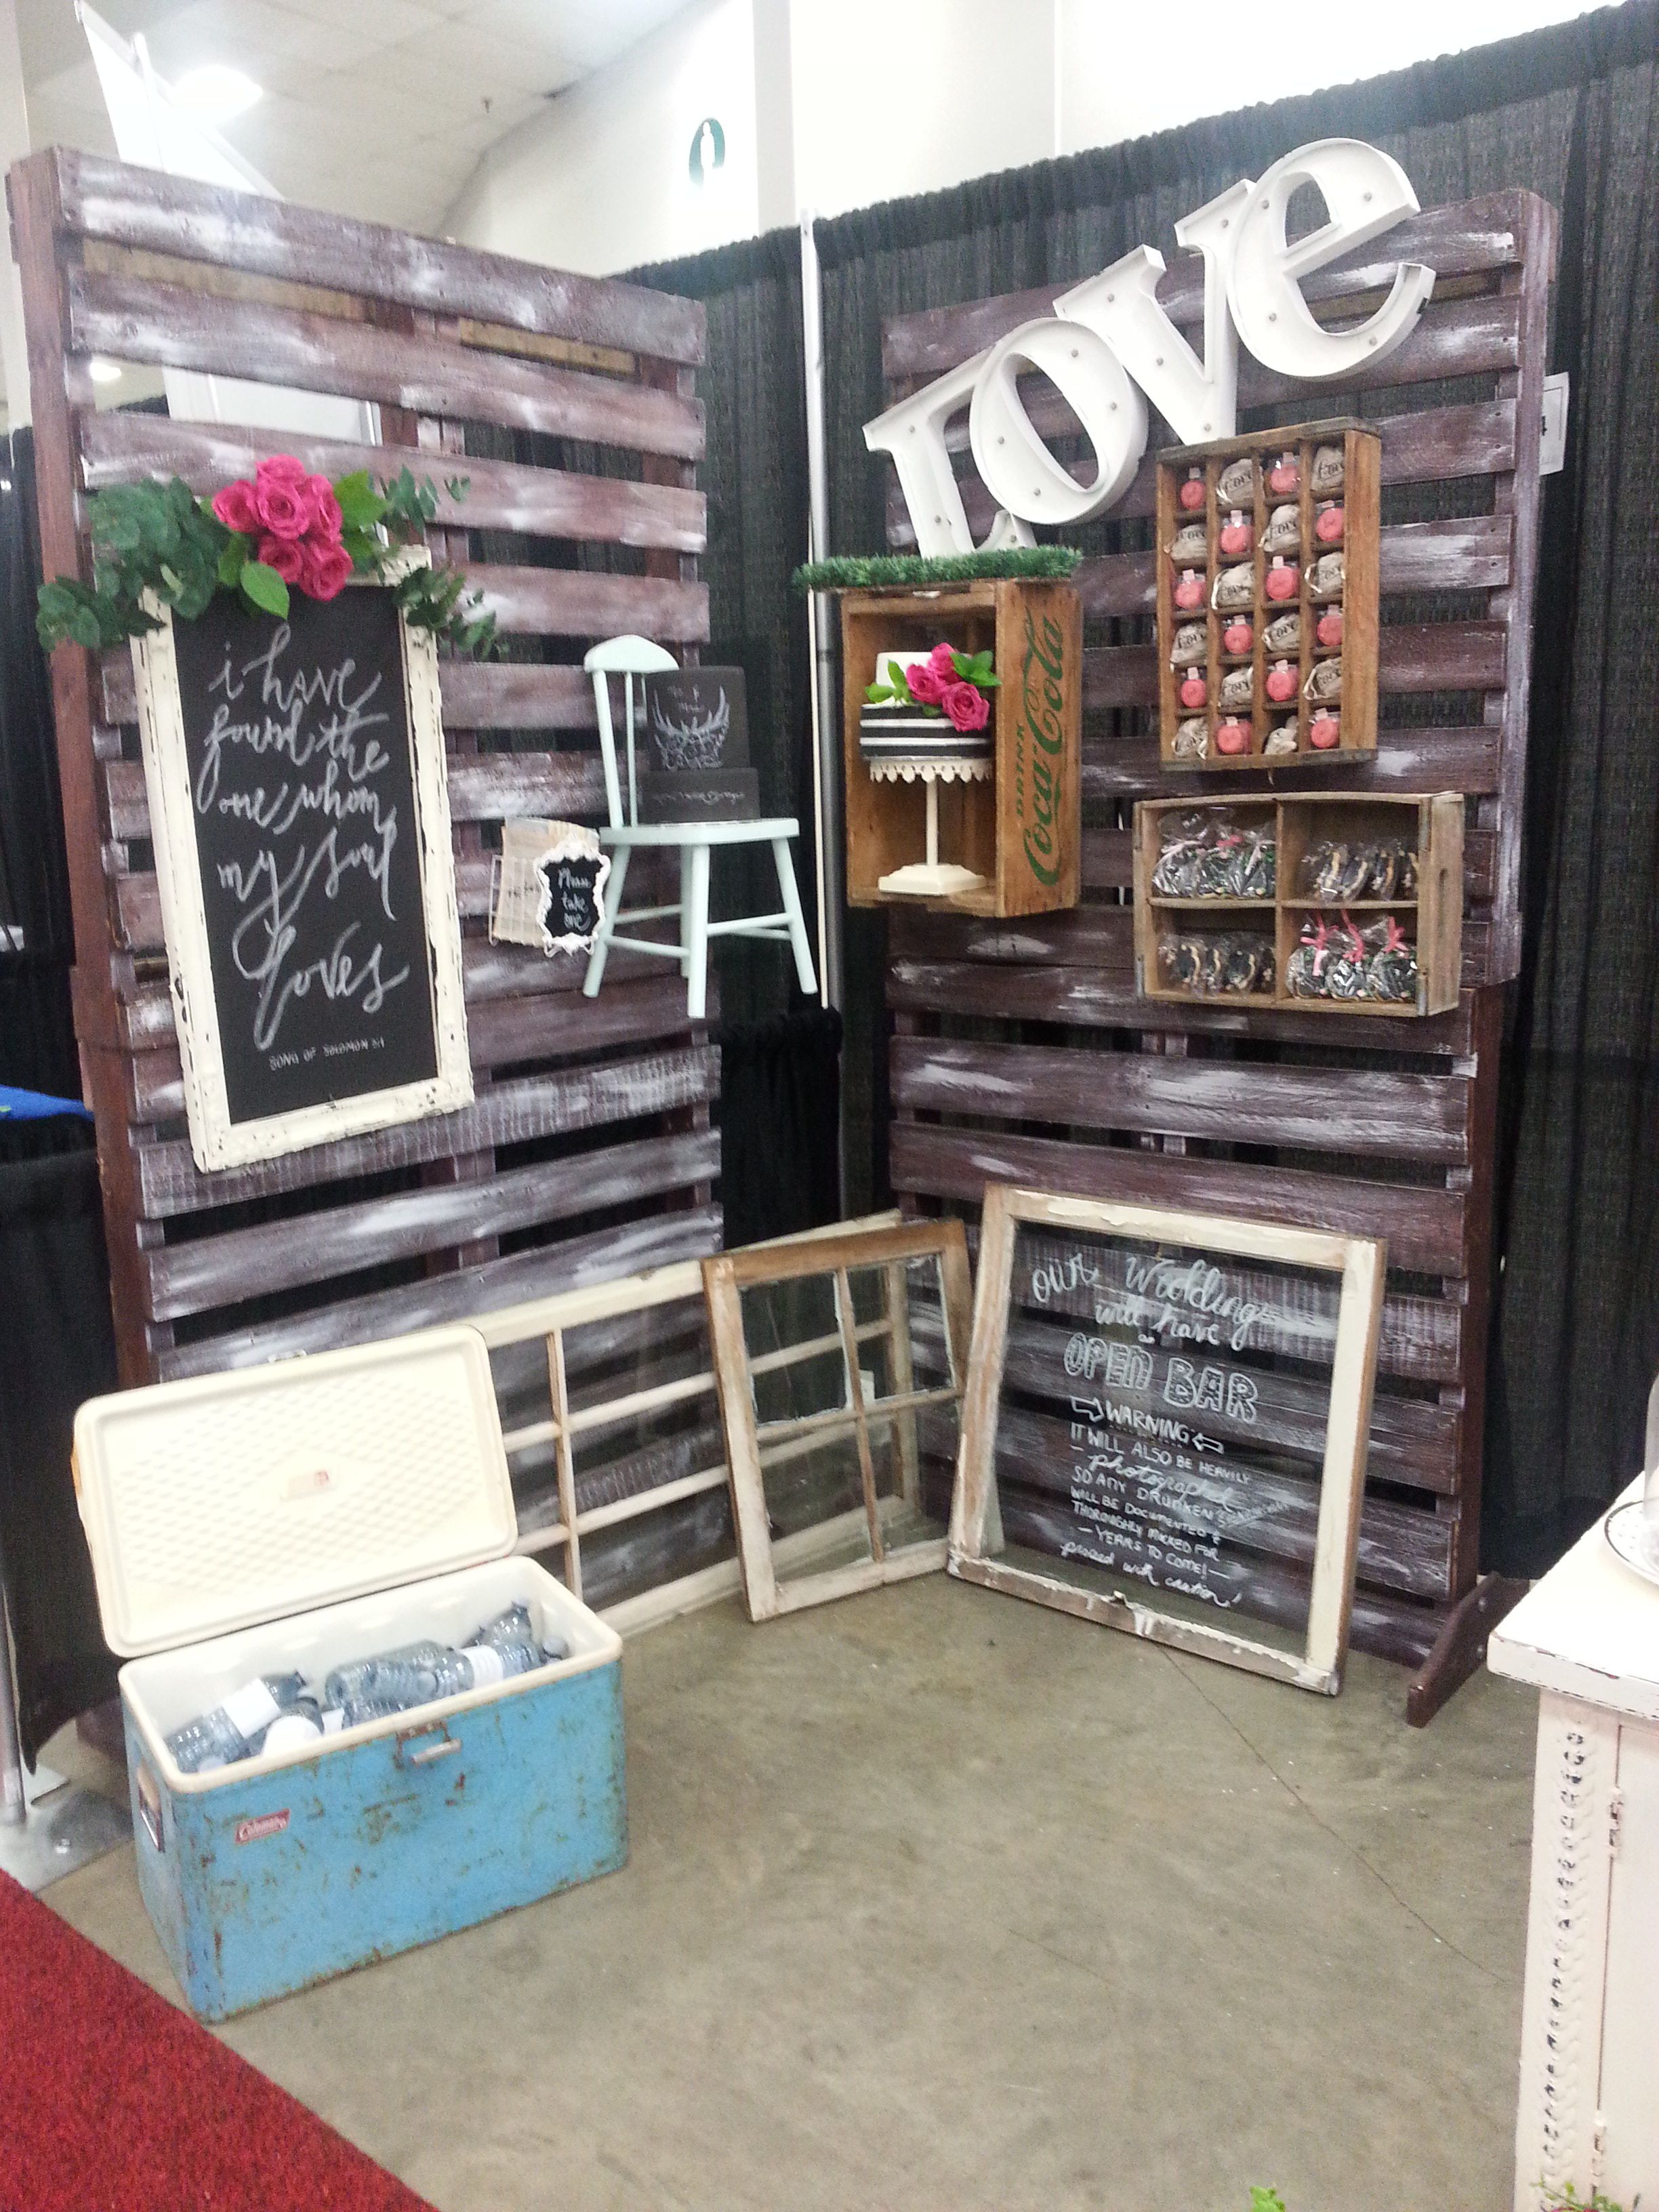 Trade show booth wedding show rustic decor vintage rentals something borrowed vintage decor - Show pics of decorative bedrooms ...